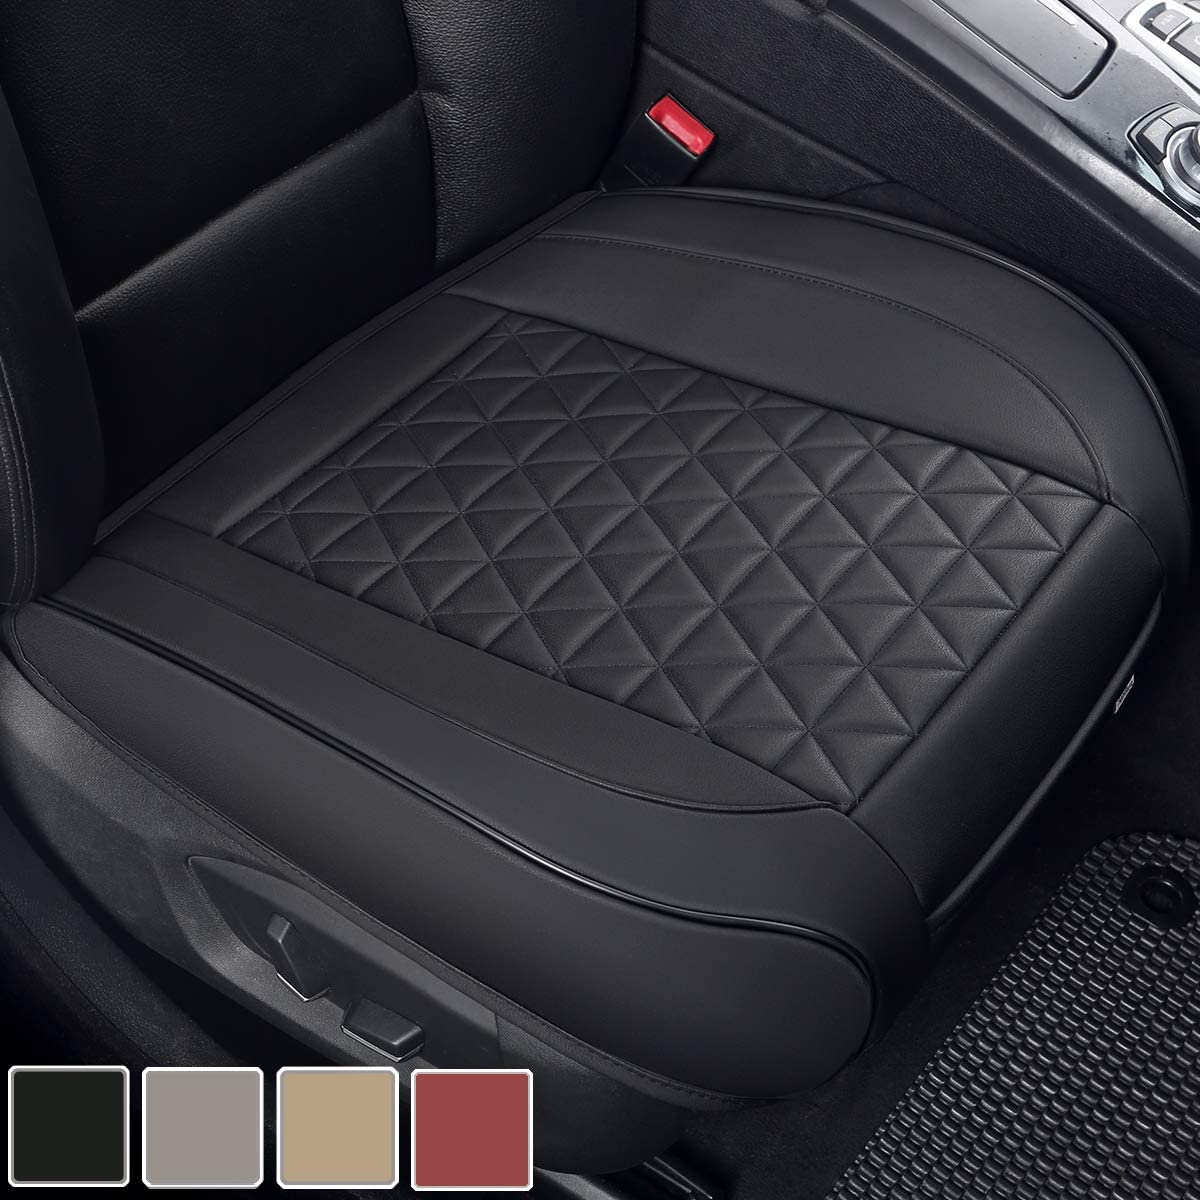 THICK VINYL ALL OVER MERCEDES SPRINTER GREY//BLACK LEATHER CAR FRONT SEAT COVERS